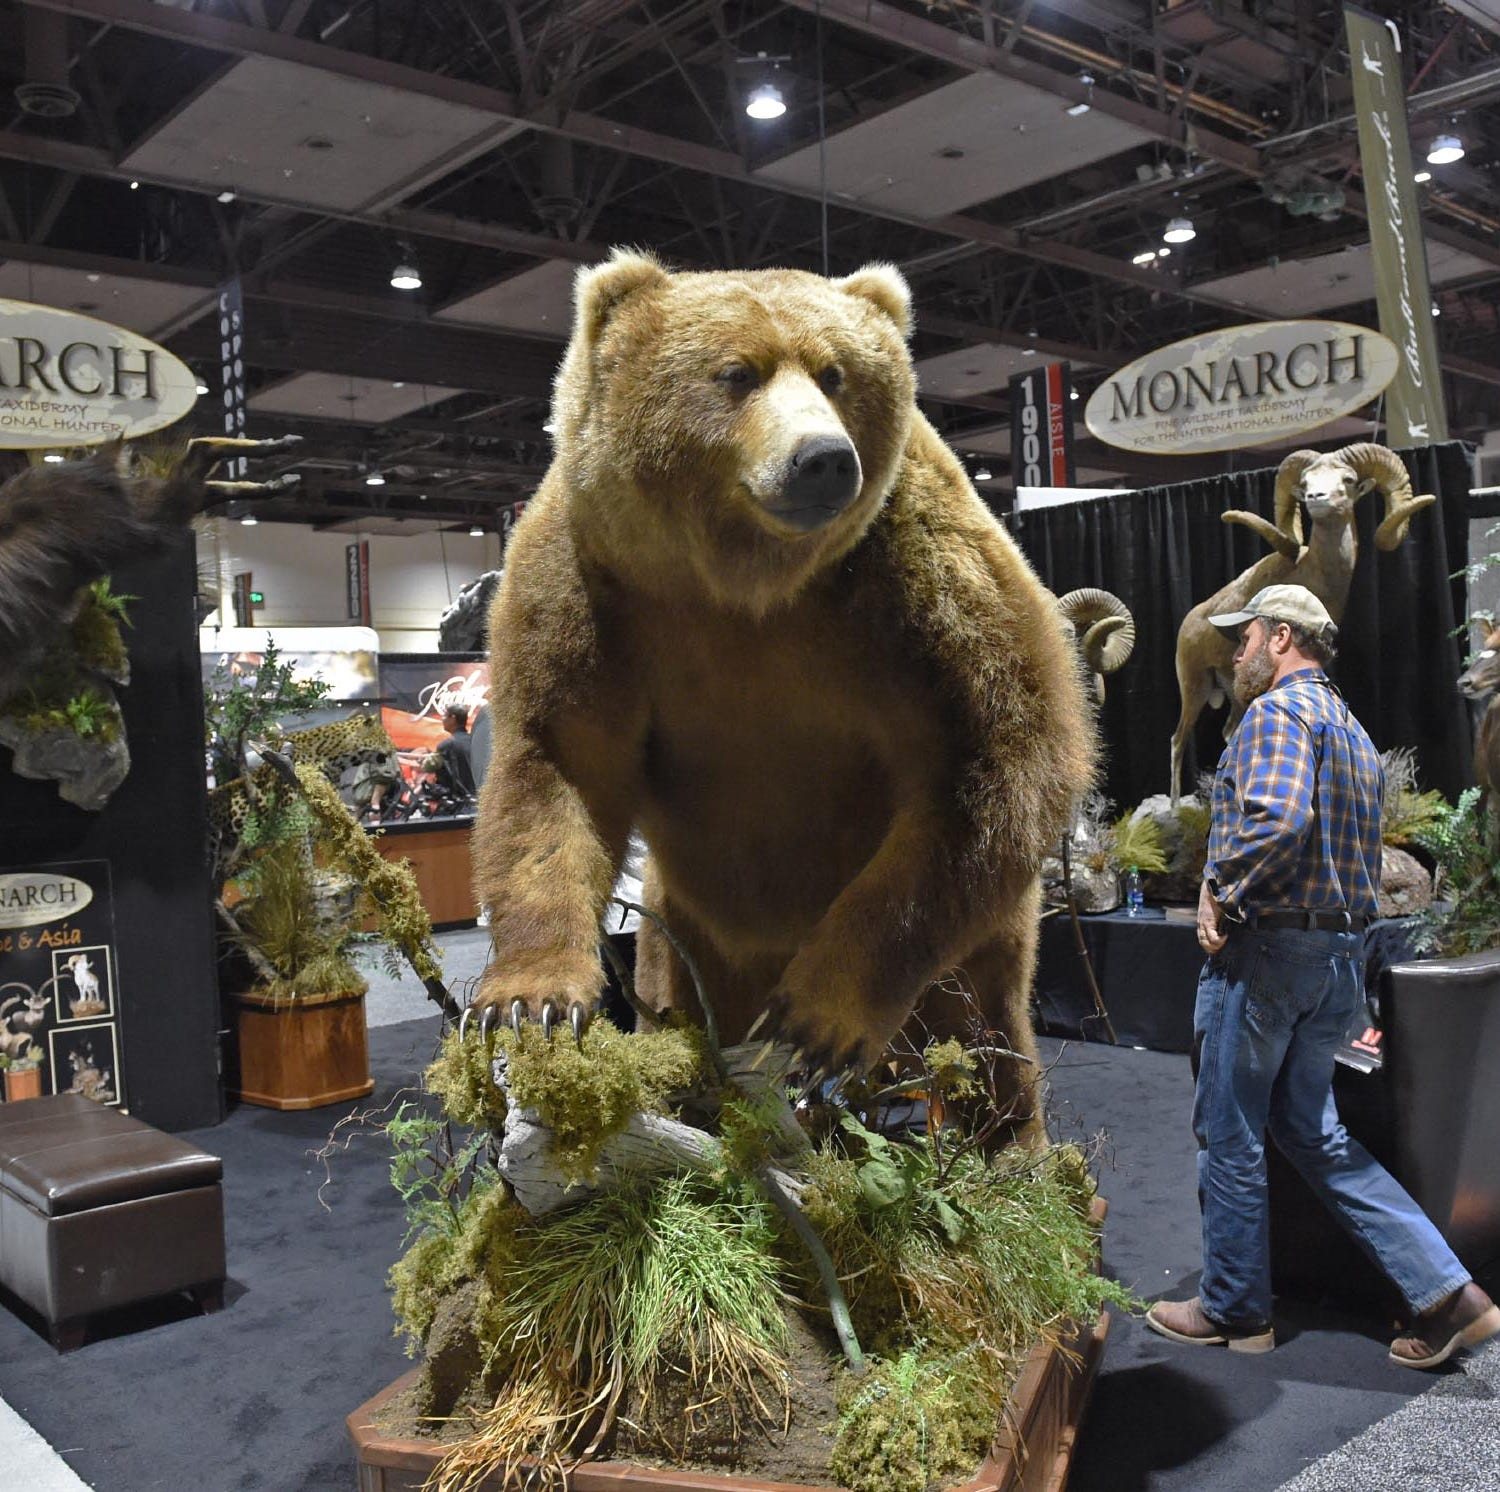 More than 15,000 attend Safari Club convention in Reno, down from last year